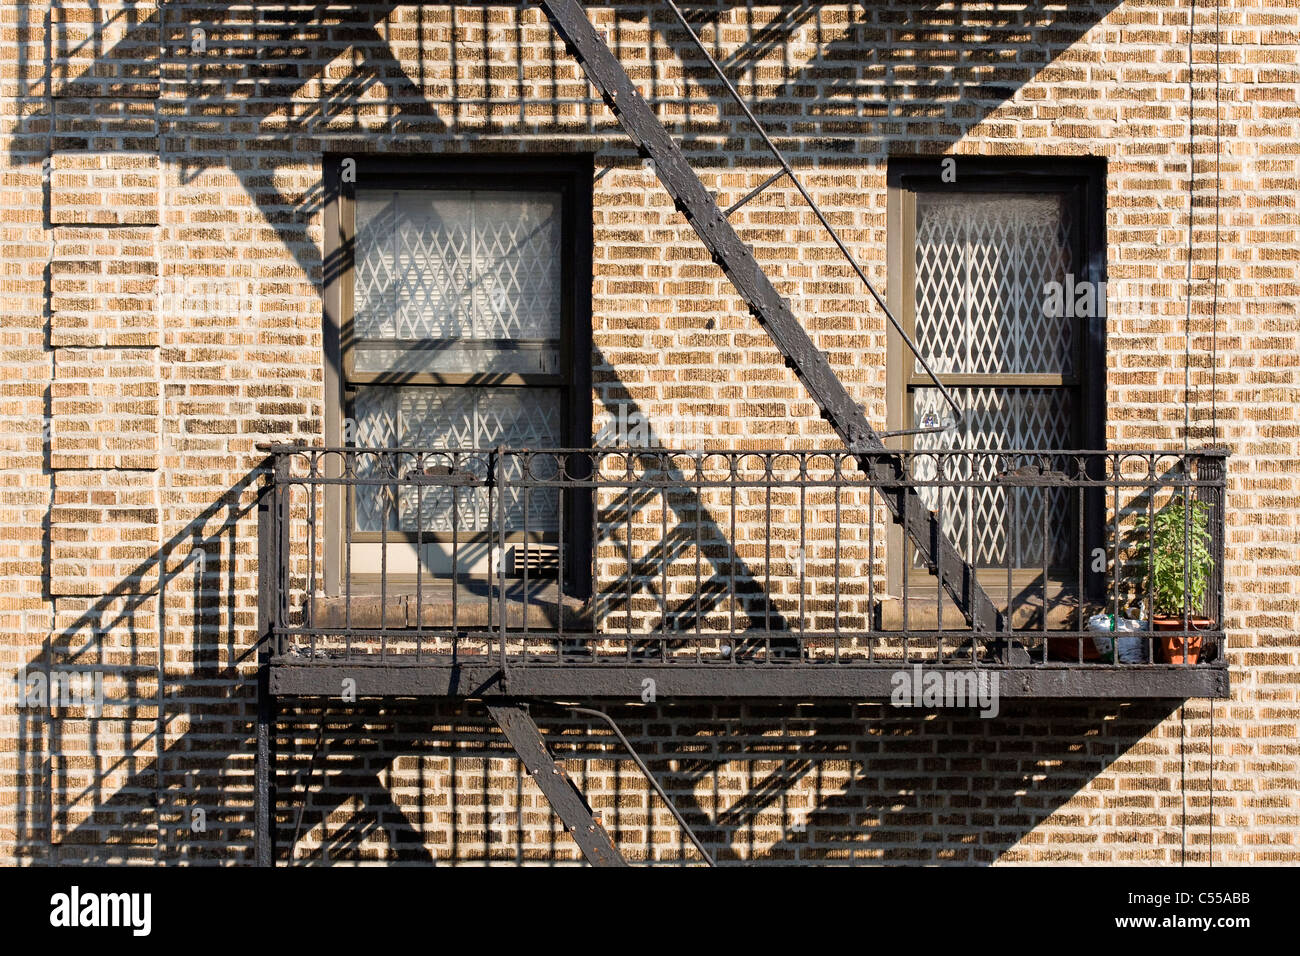 Brick Apartment Building With White Security Bars On The Windows And A Fire  Escape With Shadow